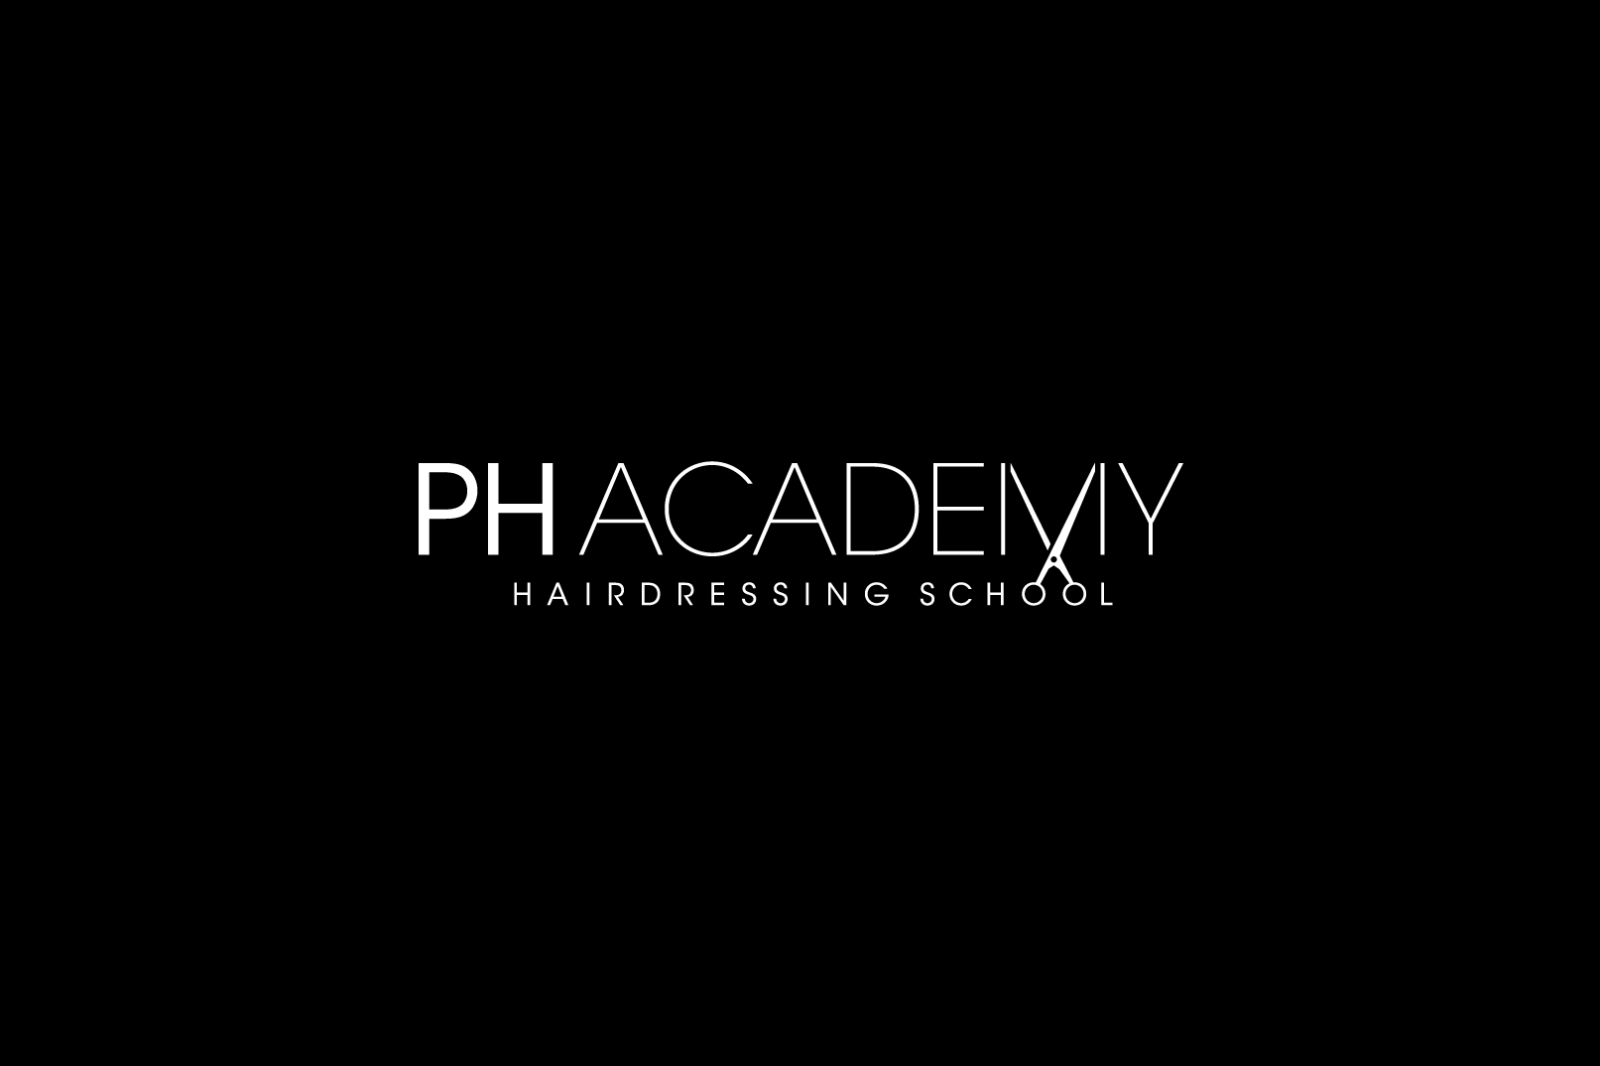 ph-academy-logo-3-corporate-identity-agency-graphic-design-canterbury.png